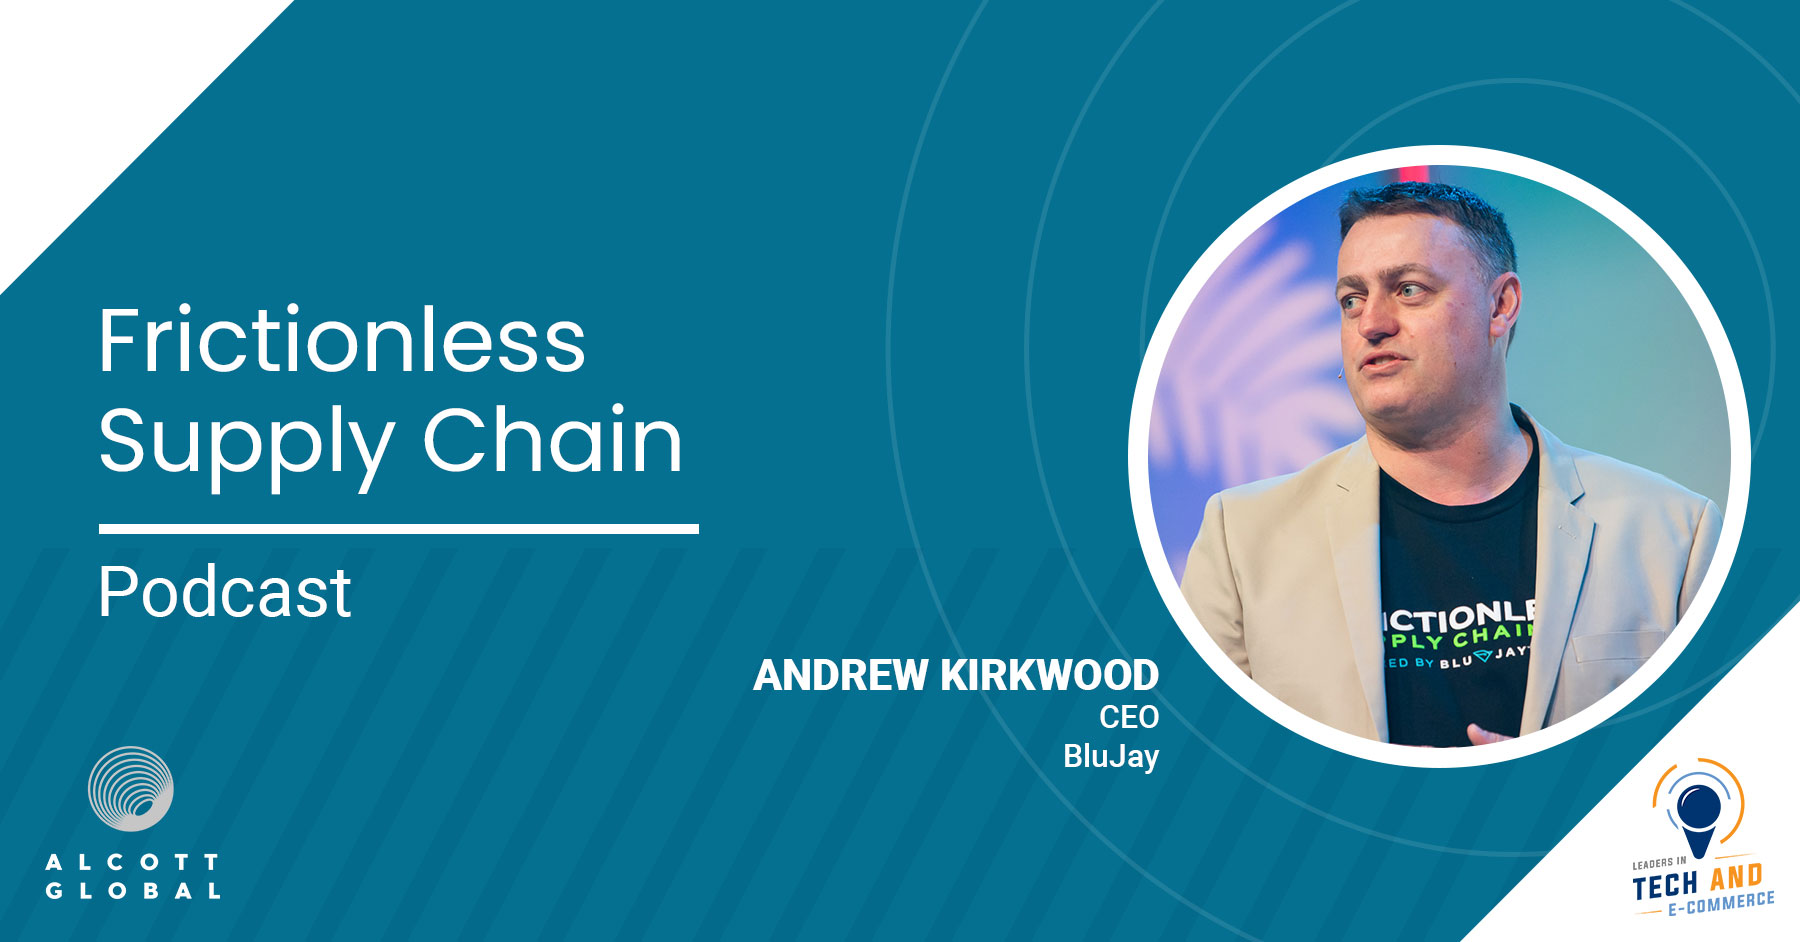 Frictionless Supply Chain with Andrew Kirkwood CEO of BluJay Featured Image